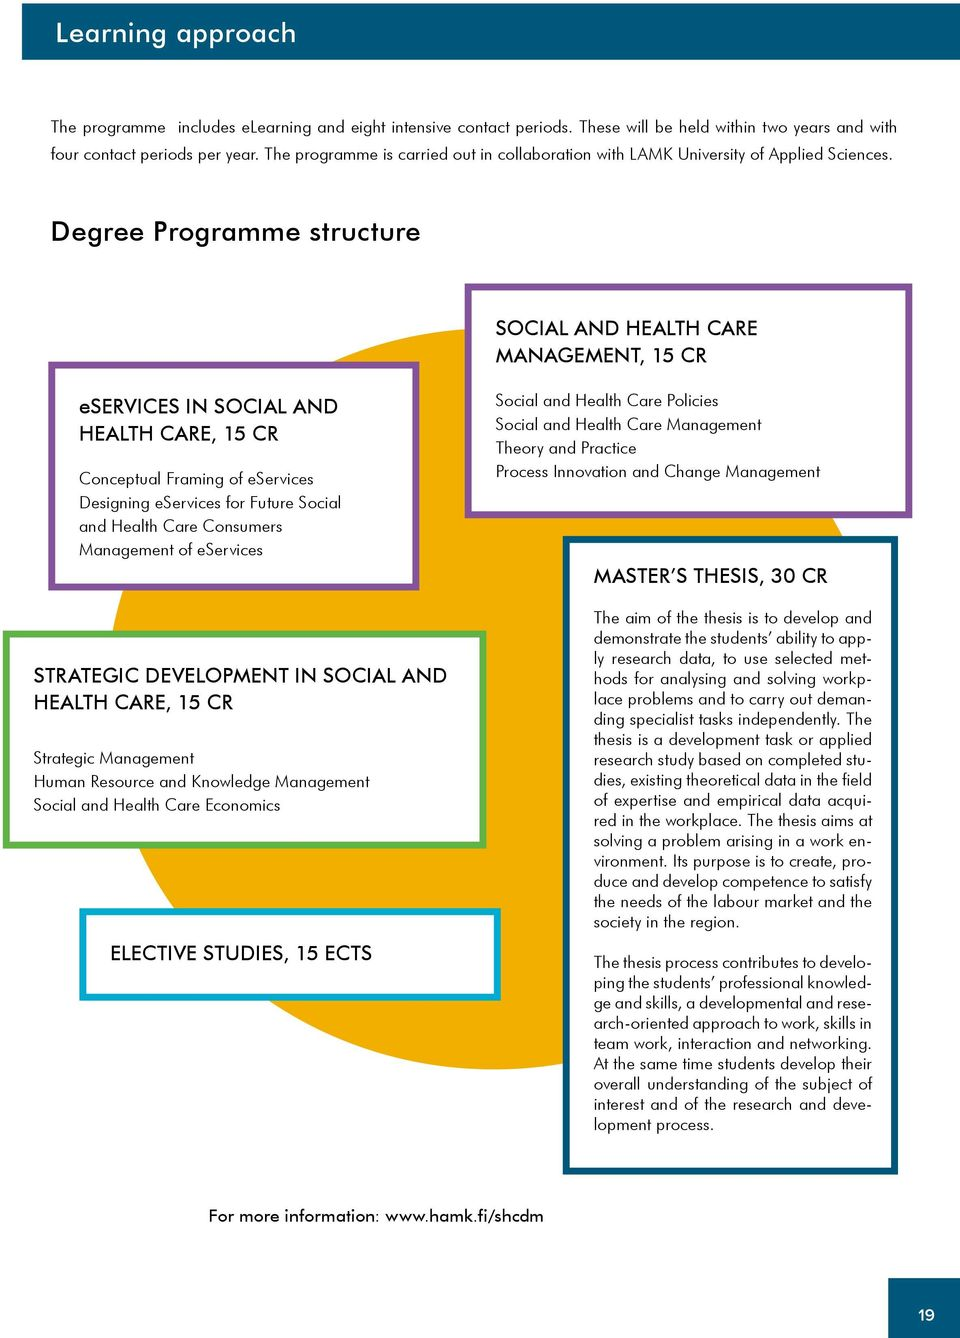 Degree Programme structure SOCIAL AND HEALTH CARE MANAGEMENT, 15 CR eservices IN SOCIAL AND HEALTH CARE, 15 CR Conceptual Framing of eservices Designing eservices for Future Social and Health Care